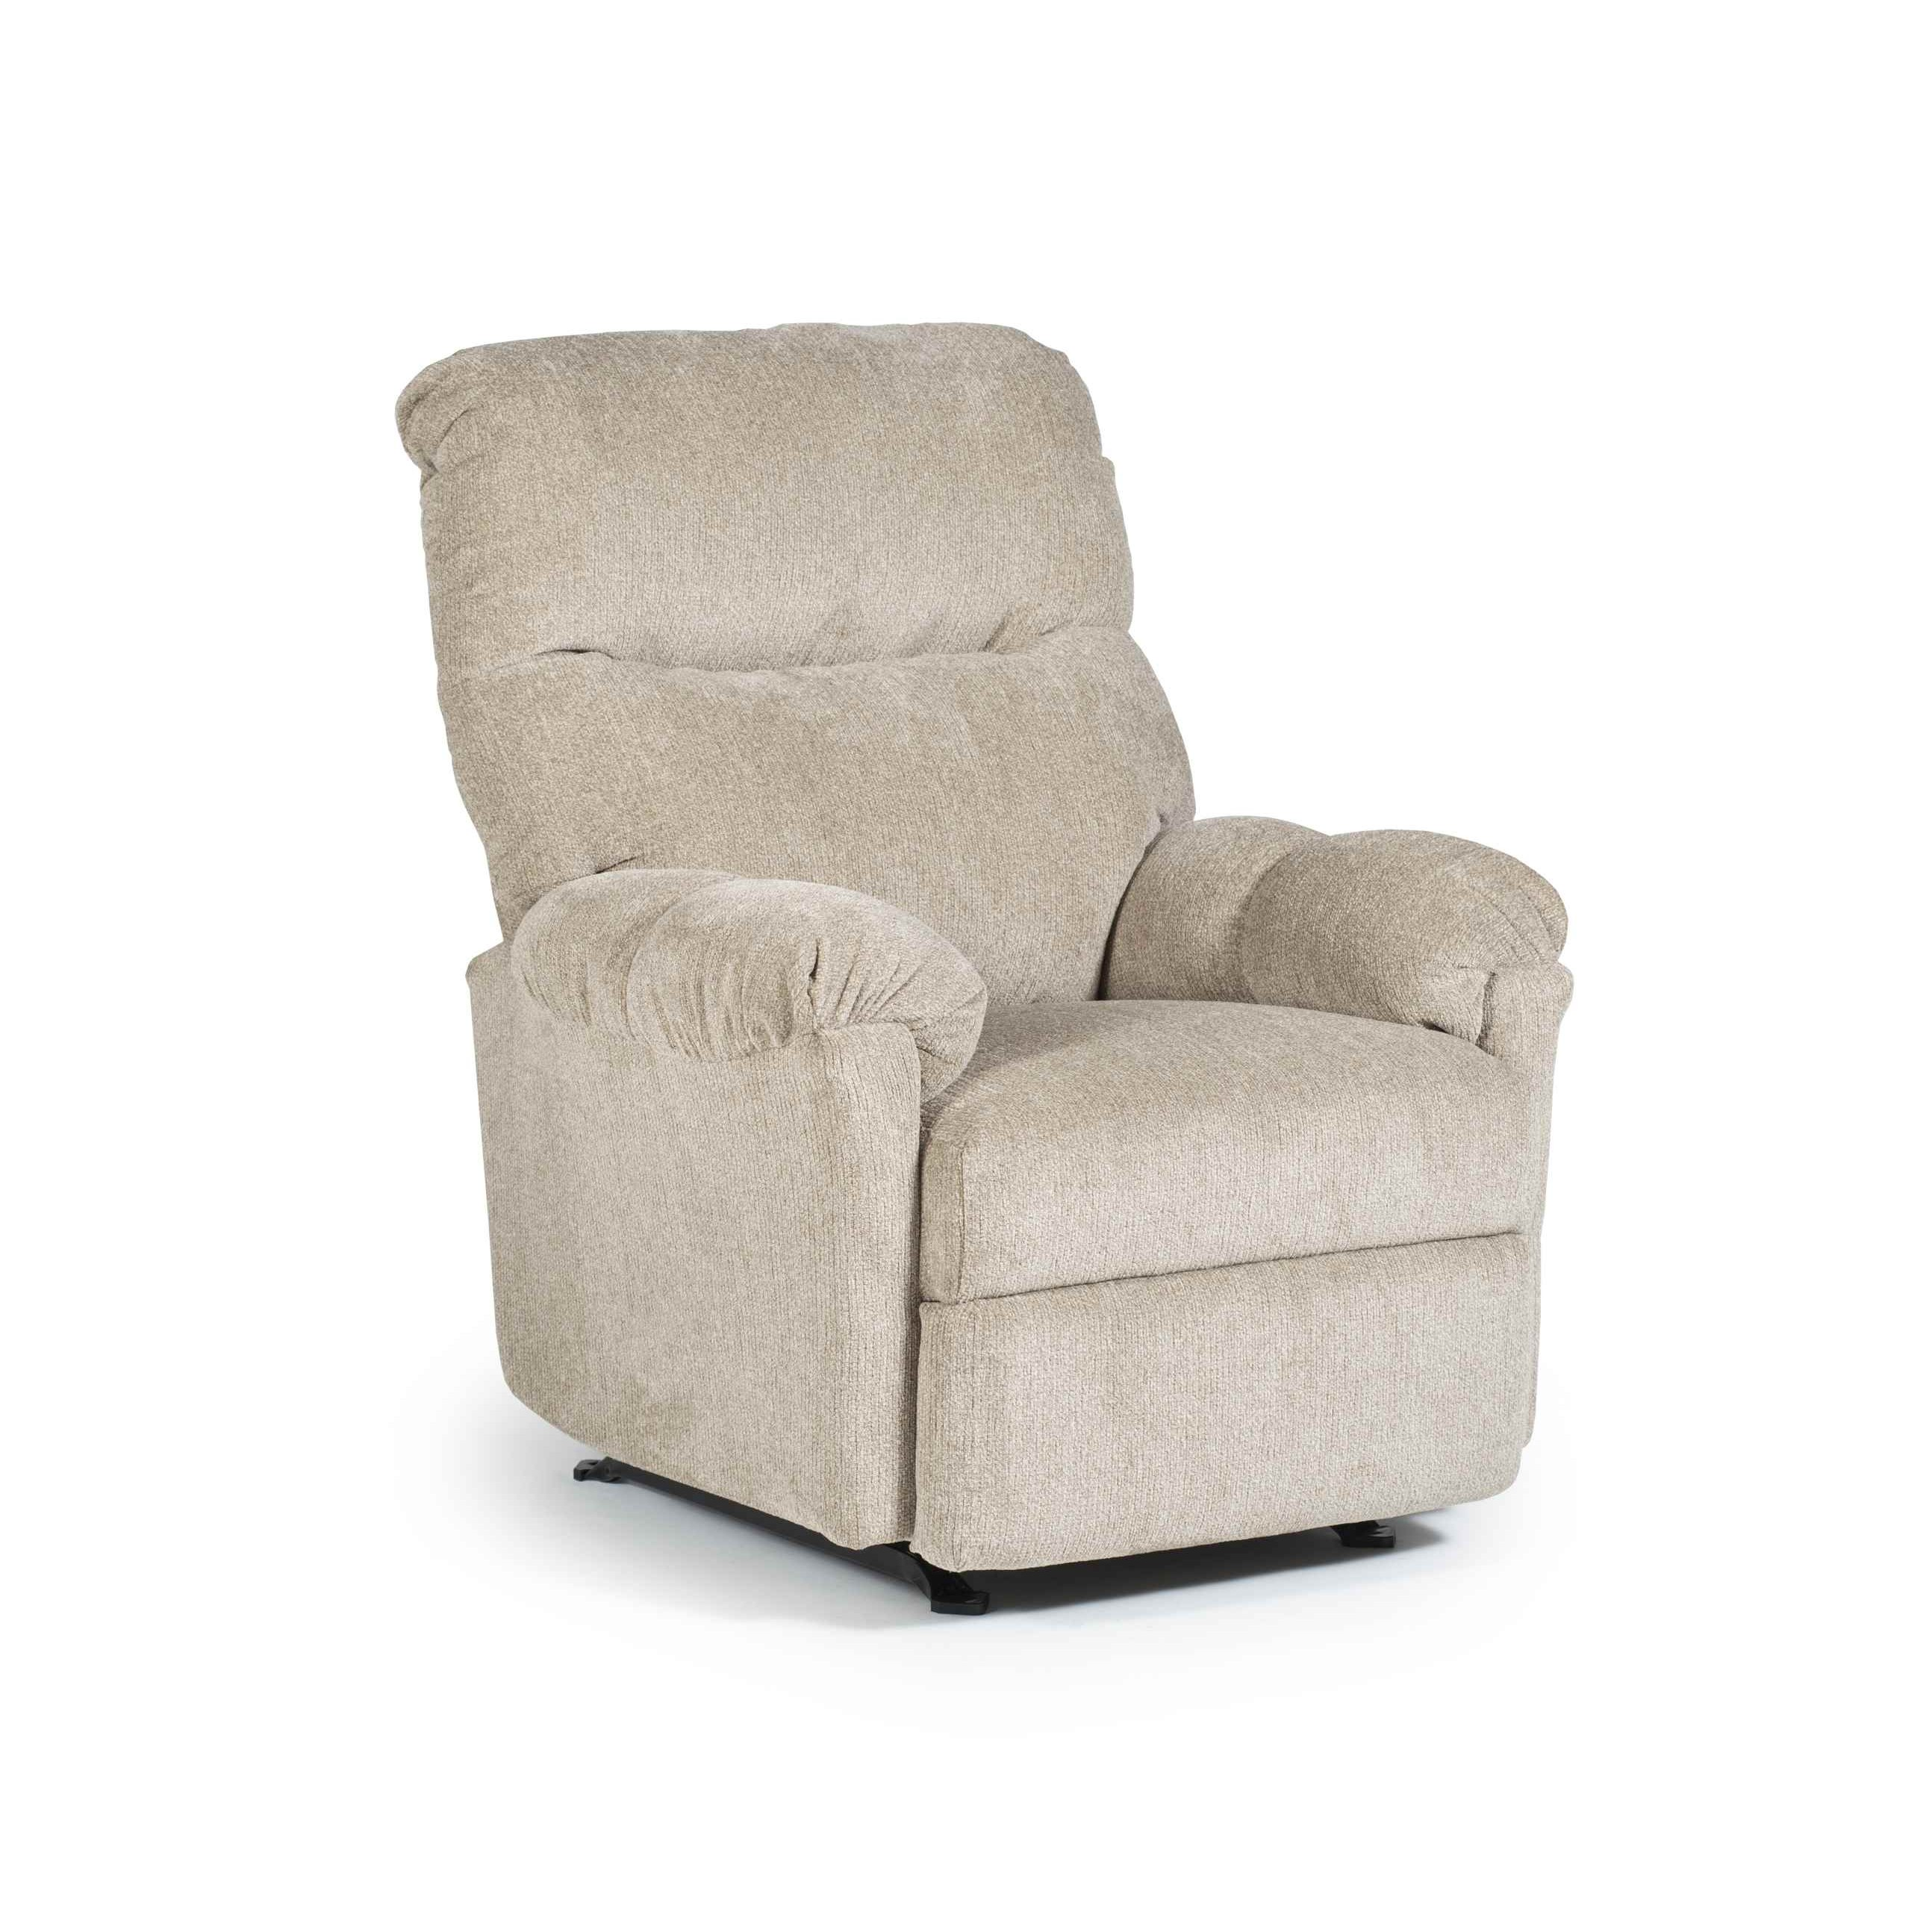 Furniture Catnapper Stallworth Leather Power Lift Recliners For